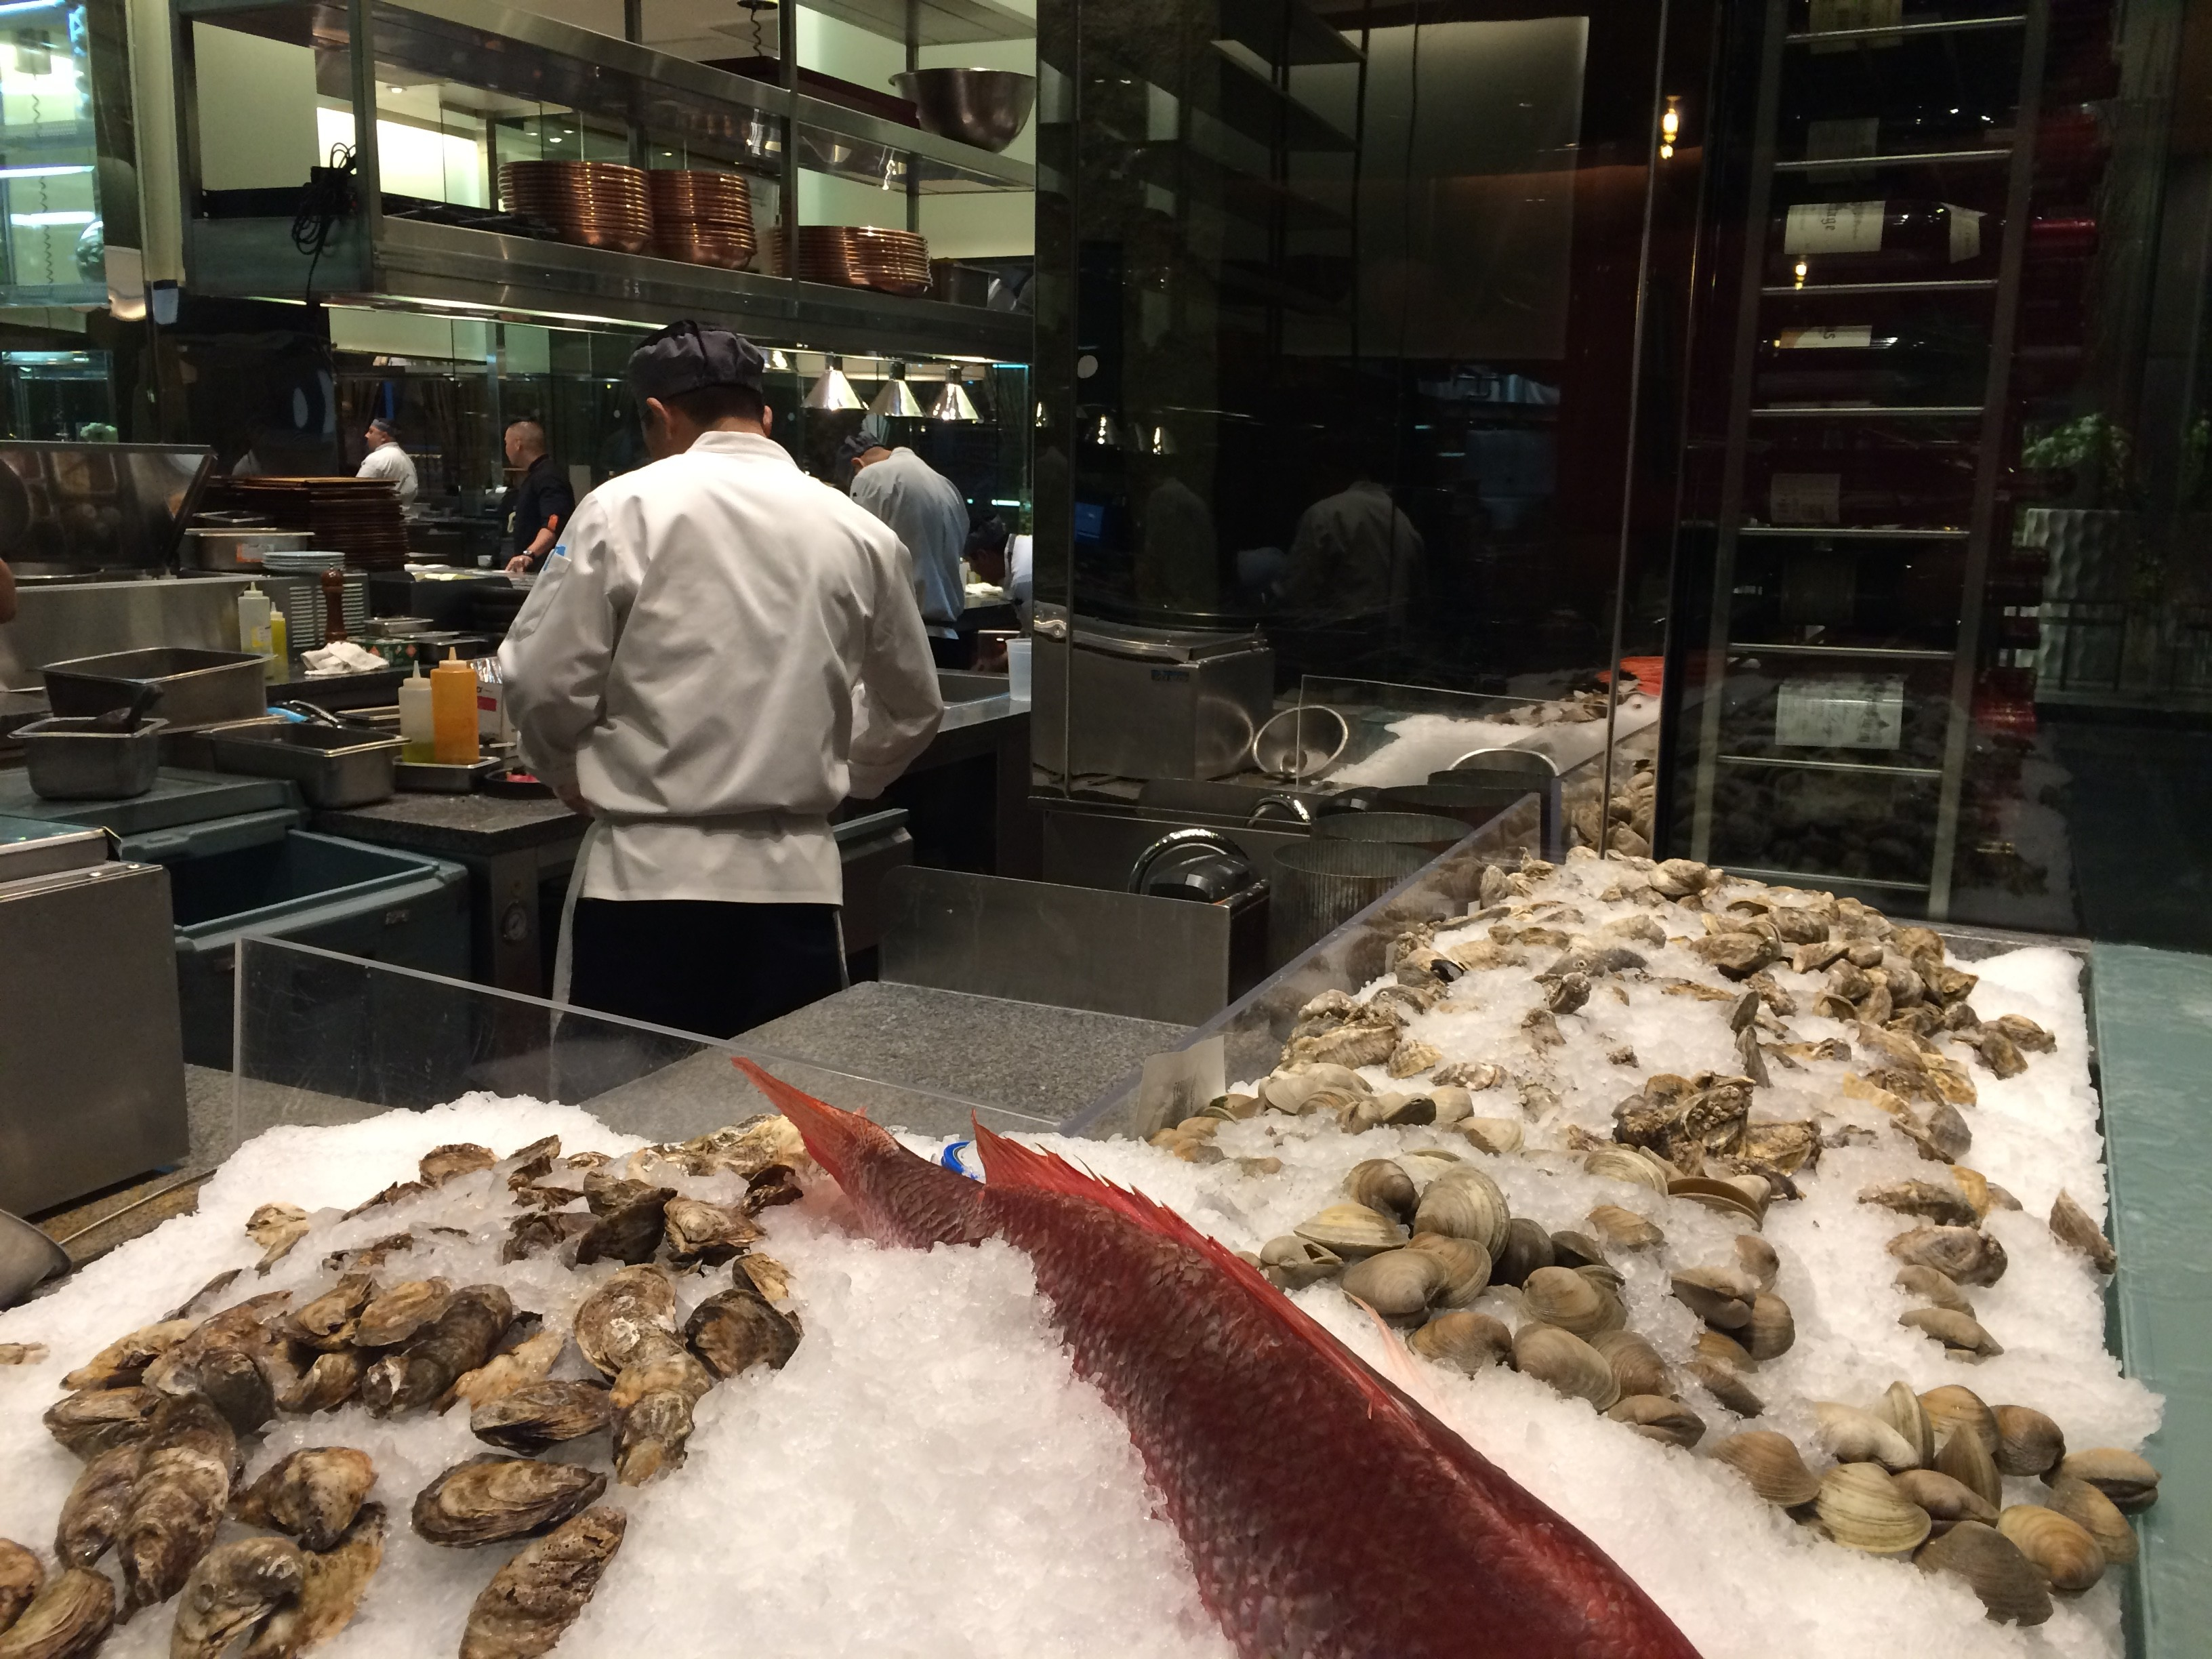 Guests at the Harvest Restaurant at the Aria Resort & Casino, which features seasonal cuisine inspired by regional farms, can watch the chefs at work. The staff gladly accommodates those with allergies and gluten-free needs. Photo by E'louise Ondash